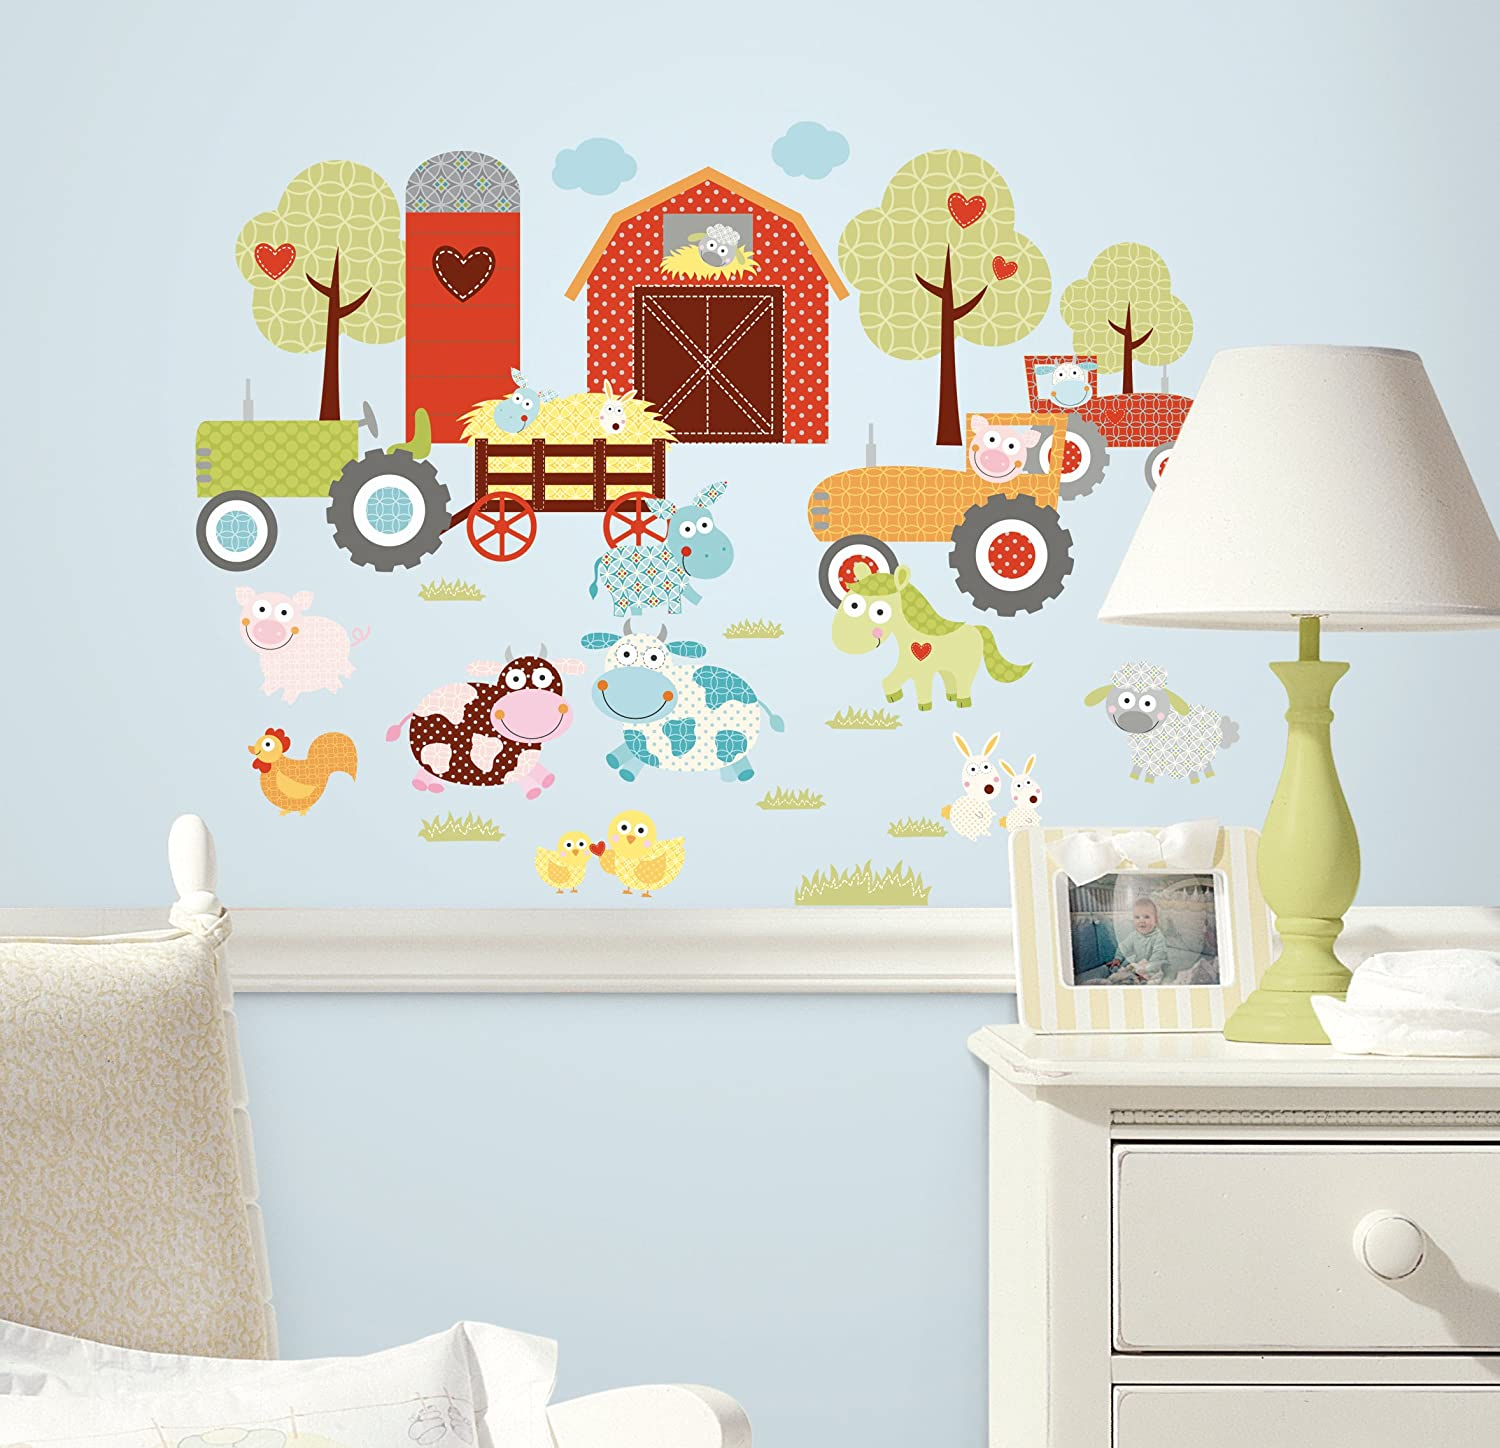 Amazon roommates rmk1604scs happi barnyard peel and stick amazon roommates rmk1604scs happi barnyard peel and stick wall decals home improvement amipublicfo Choice Image